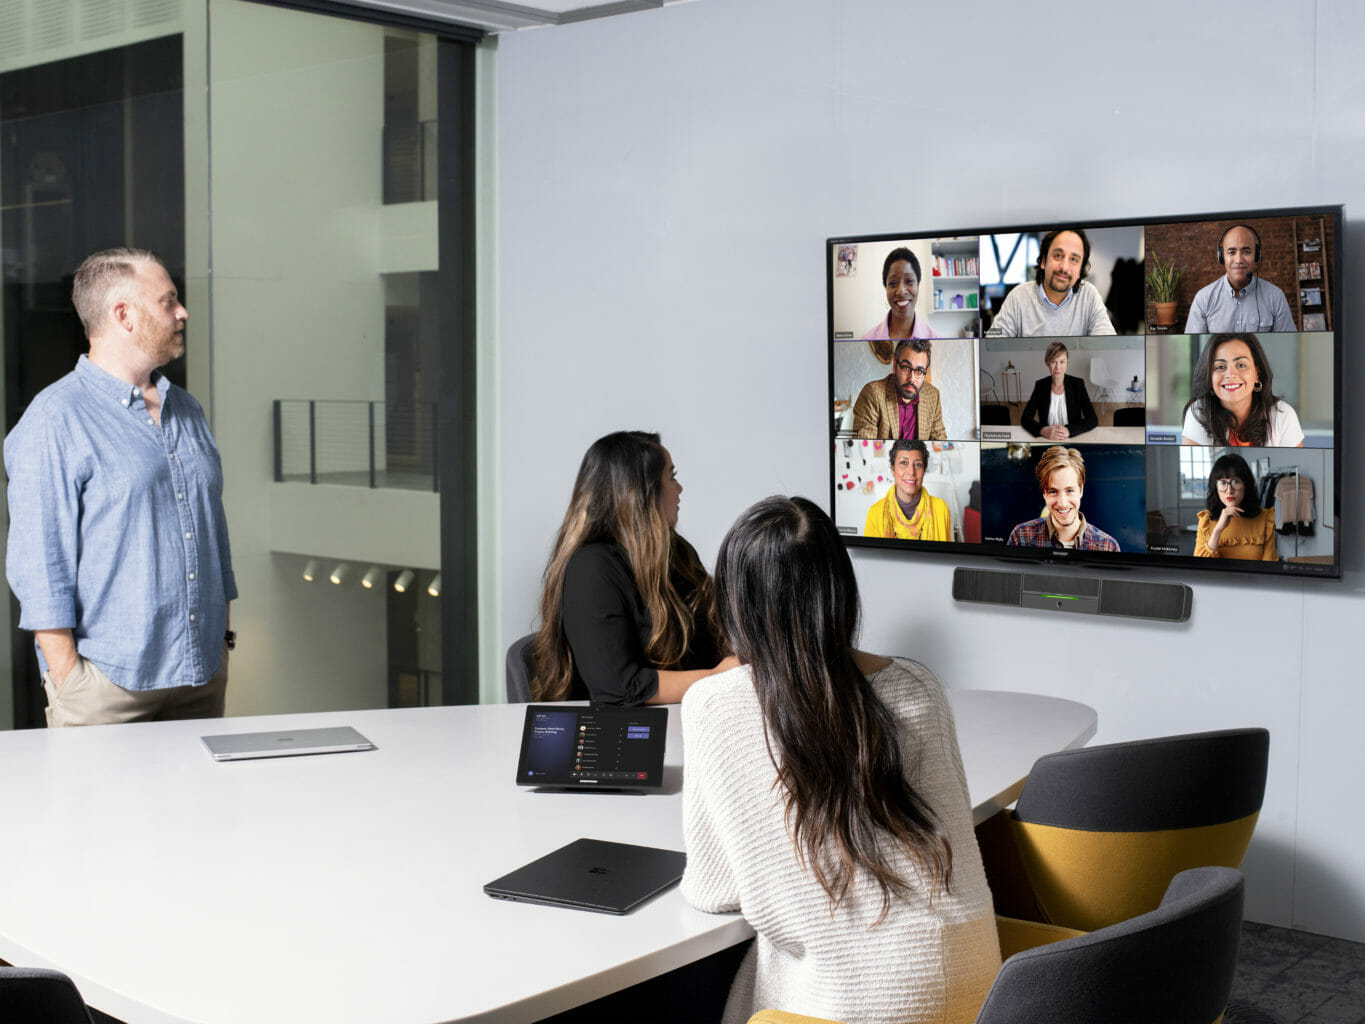 Group of people in a meeting work collaborating with colleagues remotely.